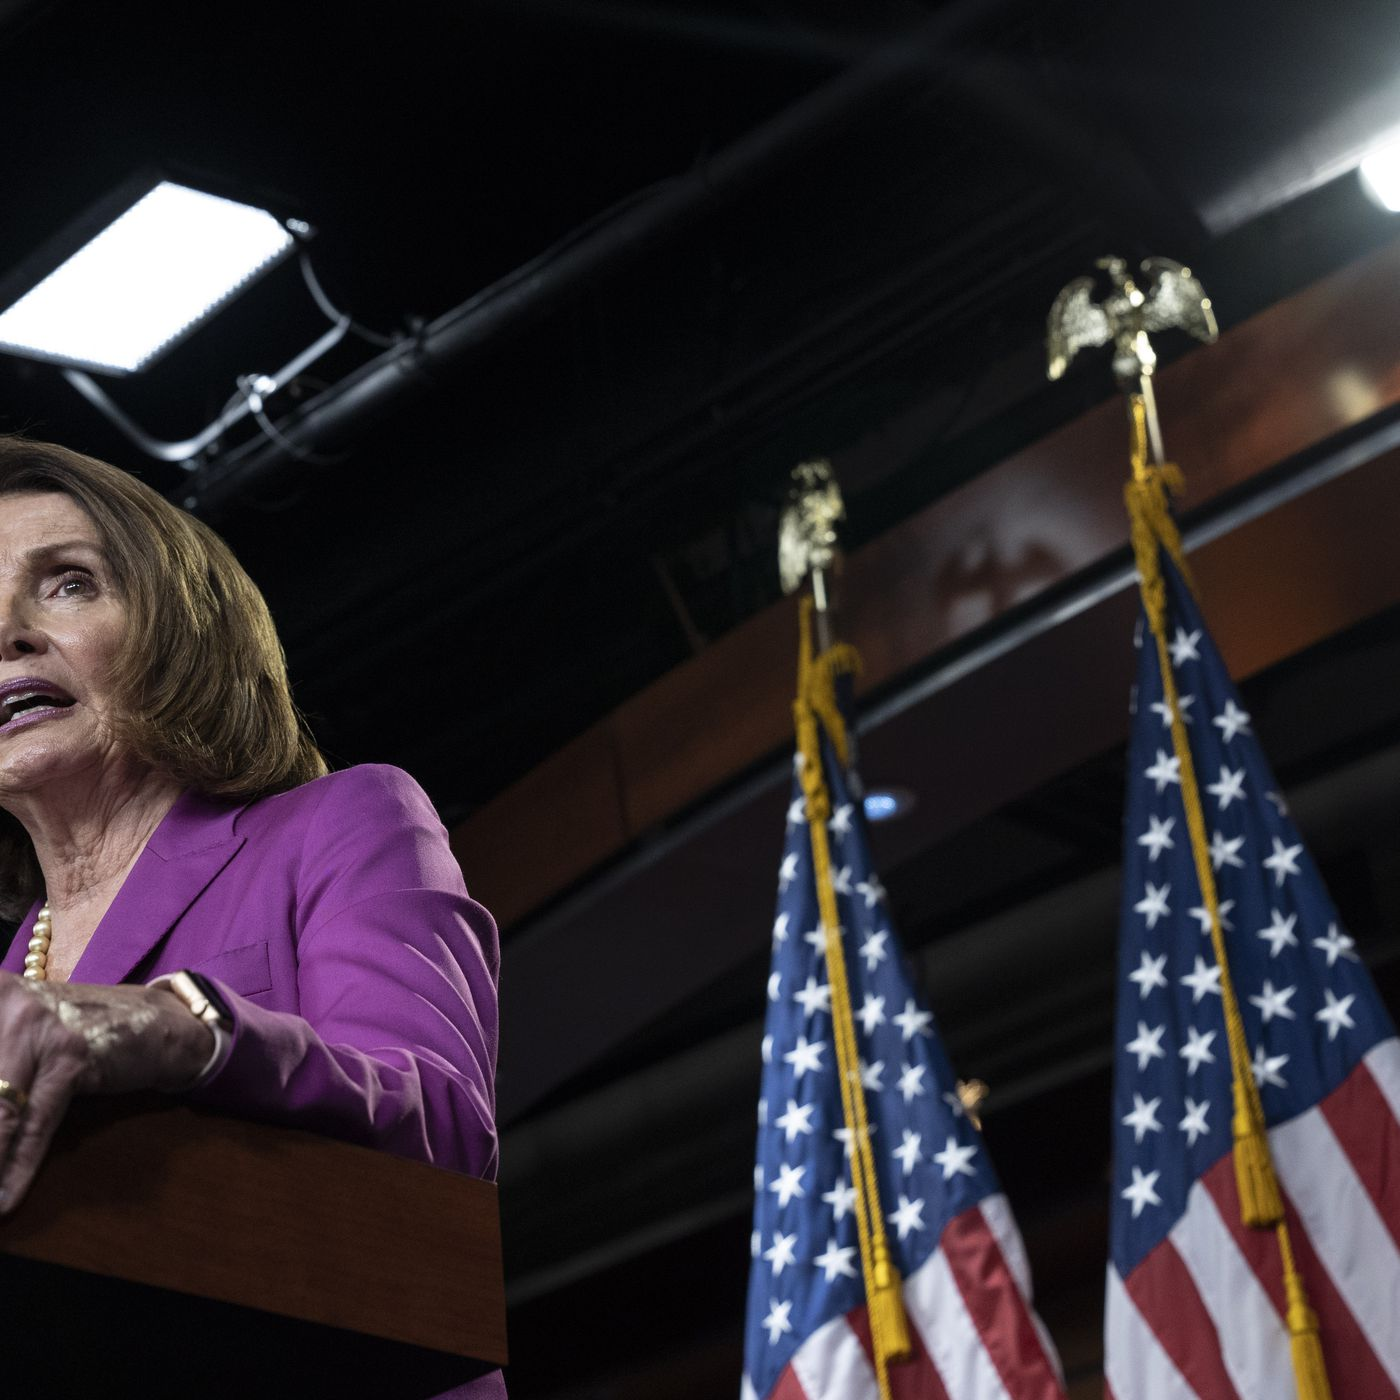 More Than 40 Democratic House Candidates Want Nancy Pelosi To Step Aside After 2018